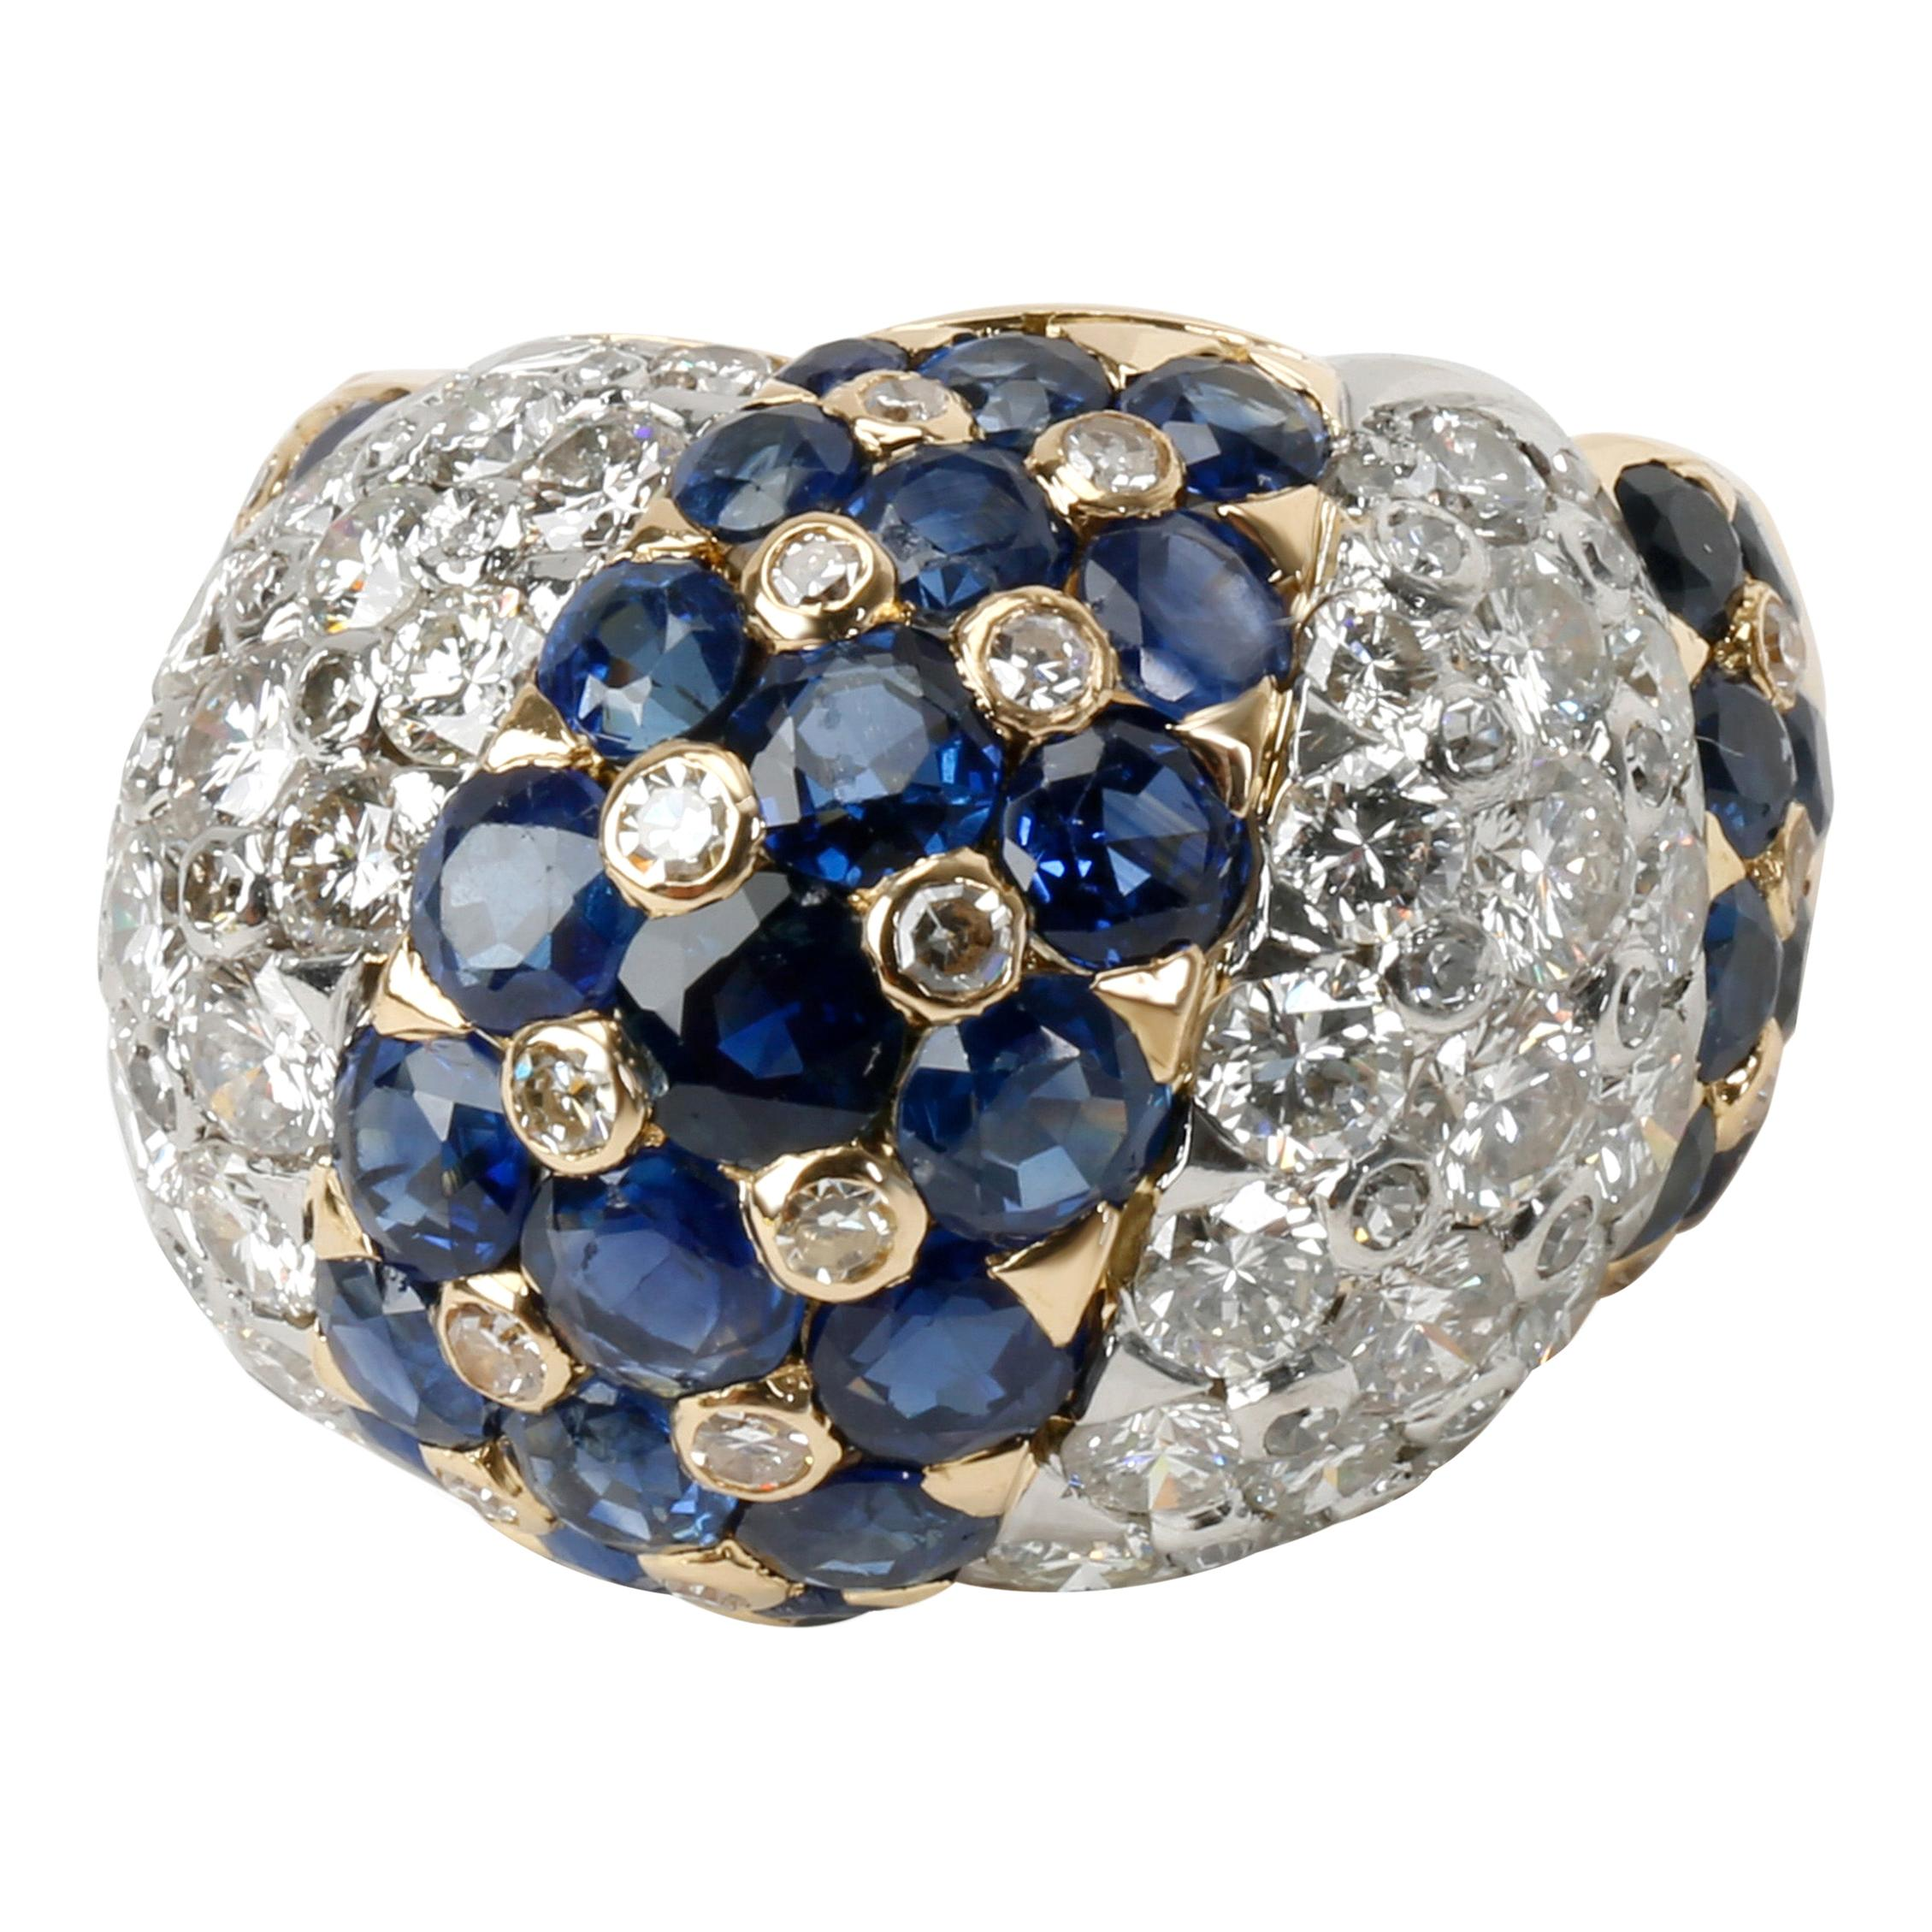 Vintage Tiffany & Co. Domed Diamond & Sapphire Ring in 18K Yellow Gold 2.5 Carat